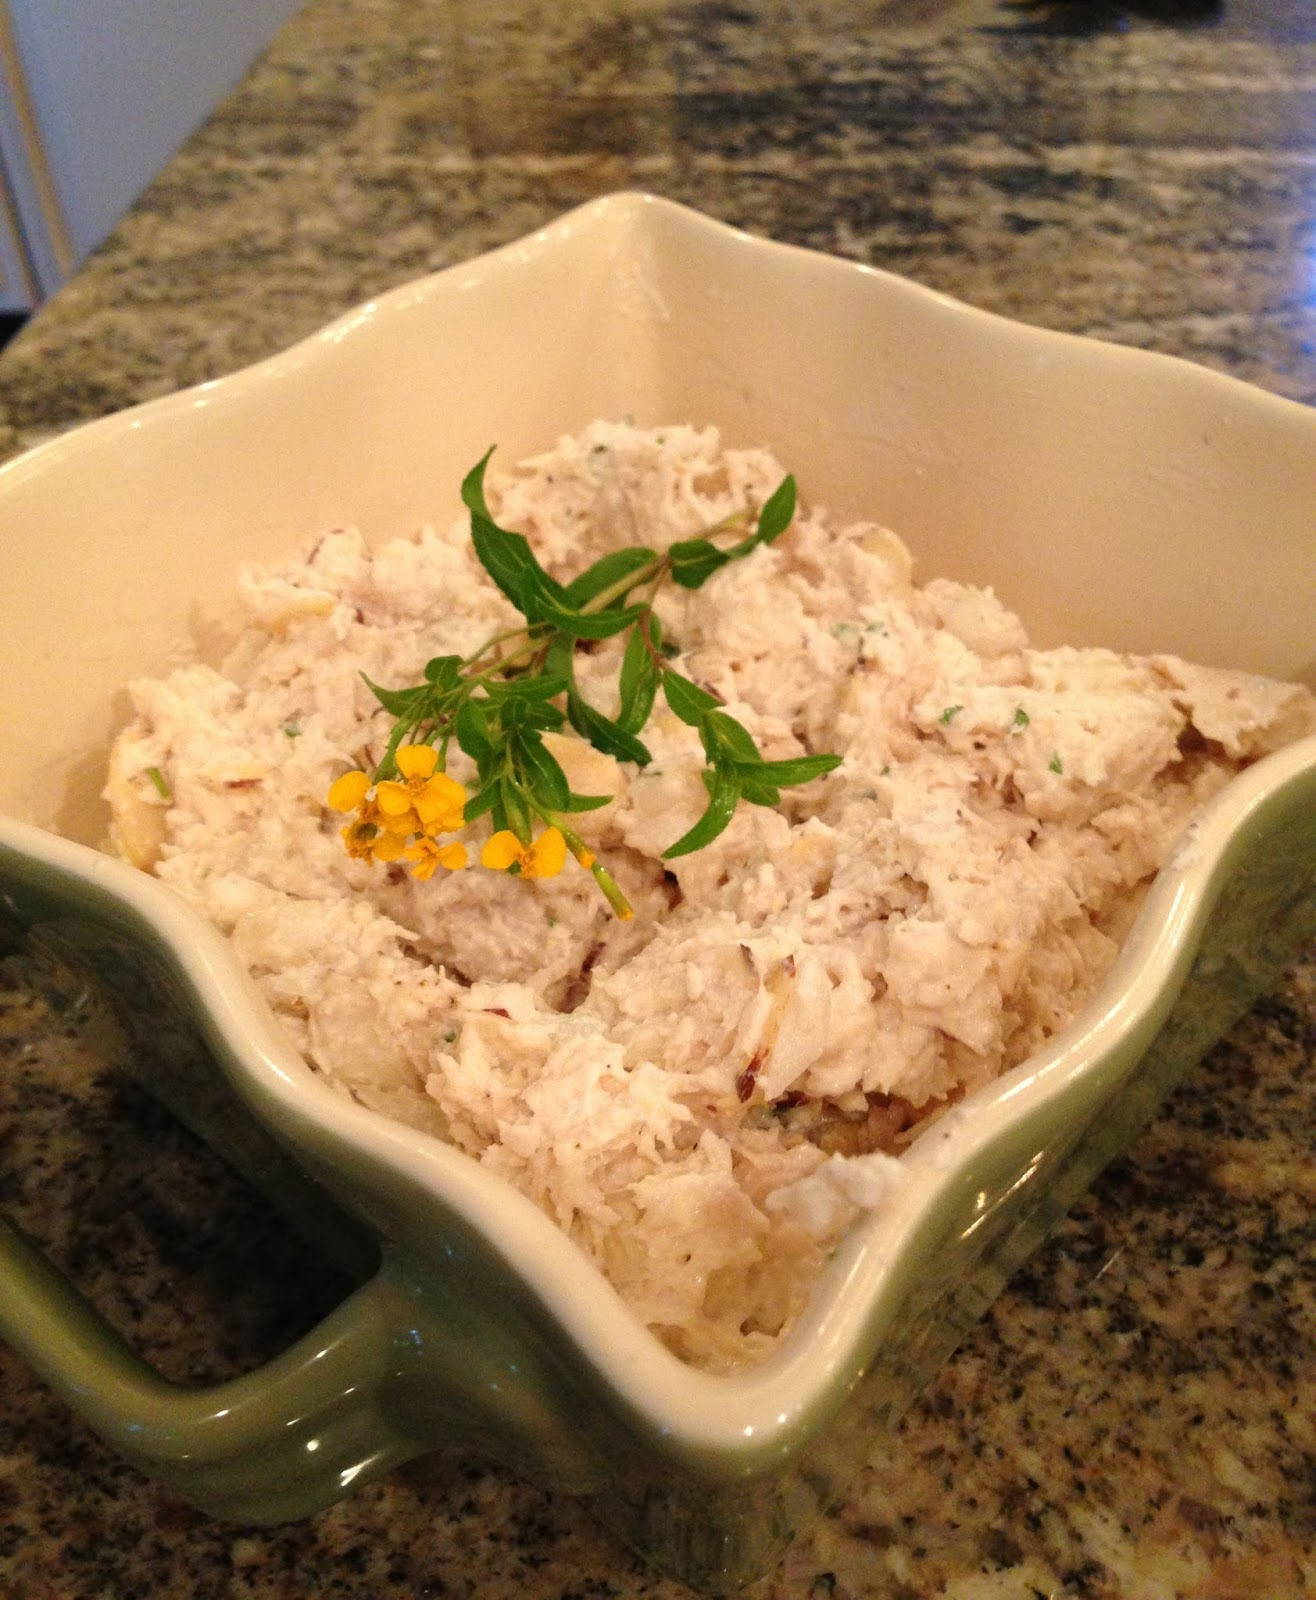 The Notable Nook: Tarragon Chicken Salad